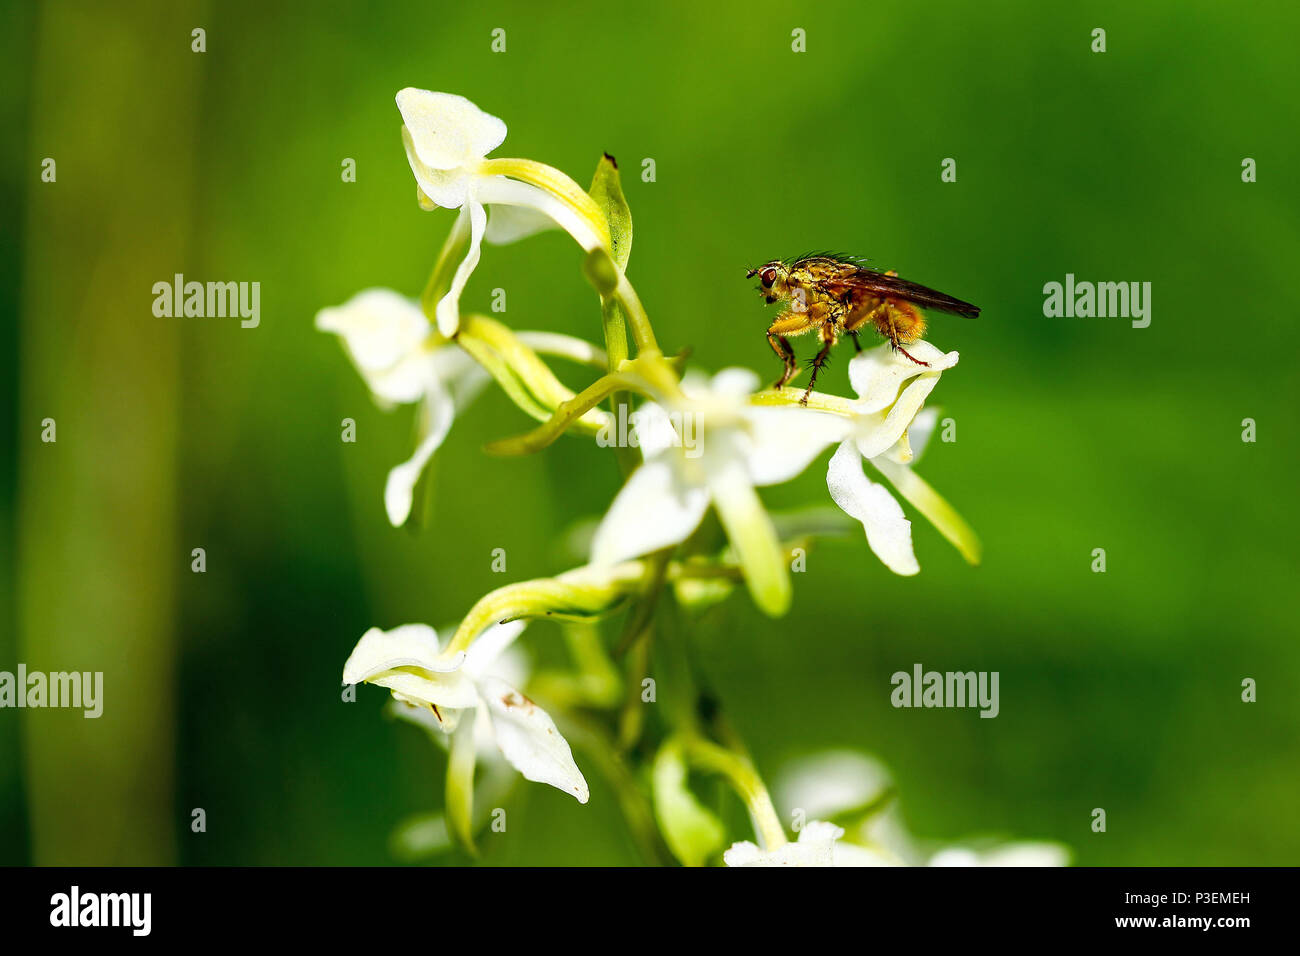 A Yellow Dung-Fly (Scathophaga stercoraria) on a Greater Butterfly Orchid (Platanthera chlorantha) or Lesser Butterfly Orchid (Platanthera bifolia) - Stock Image